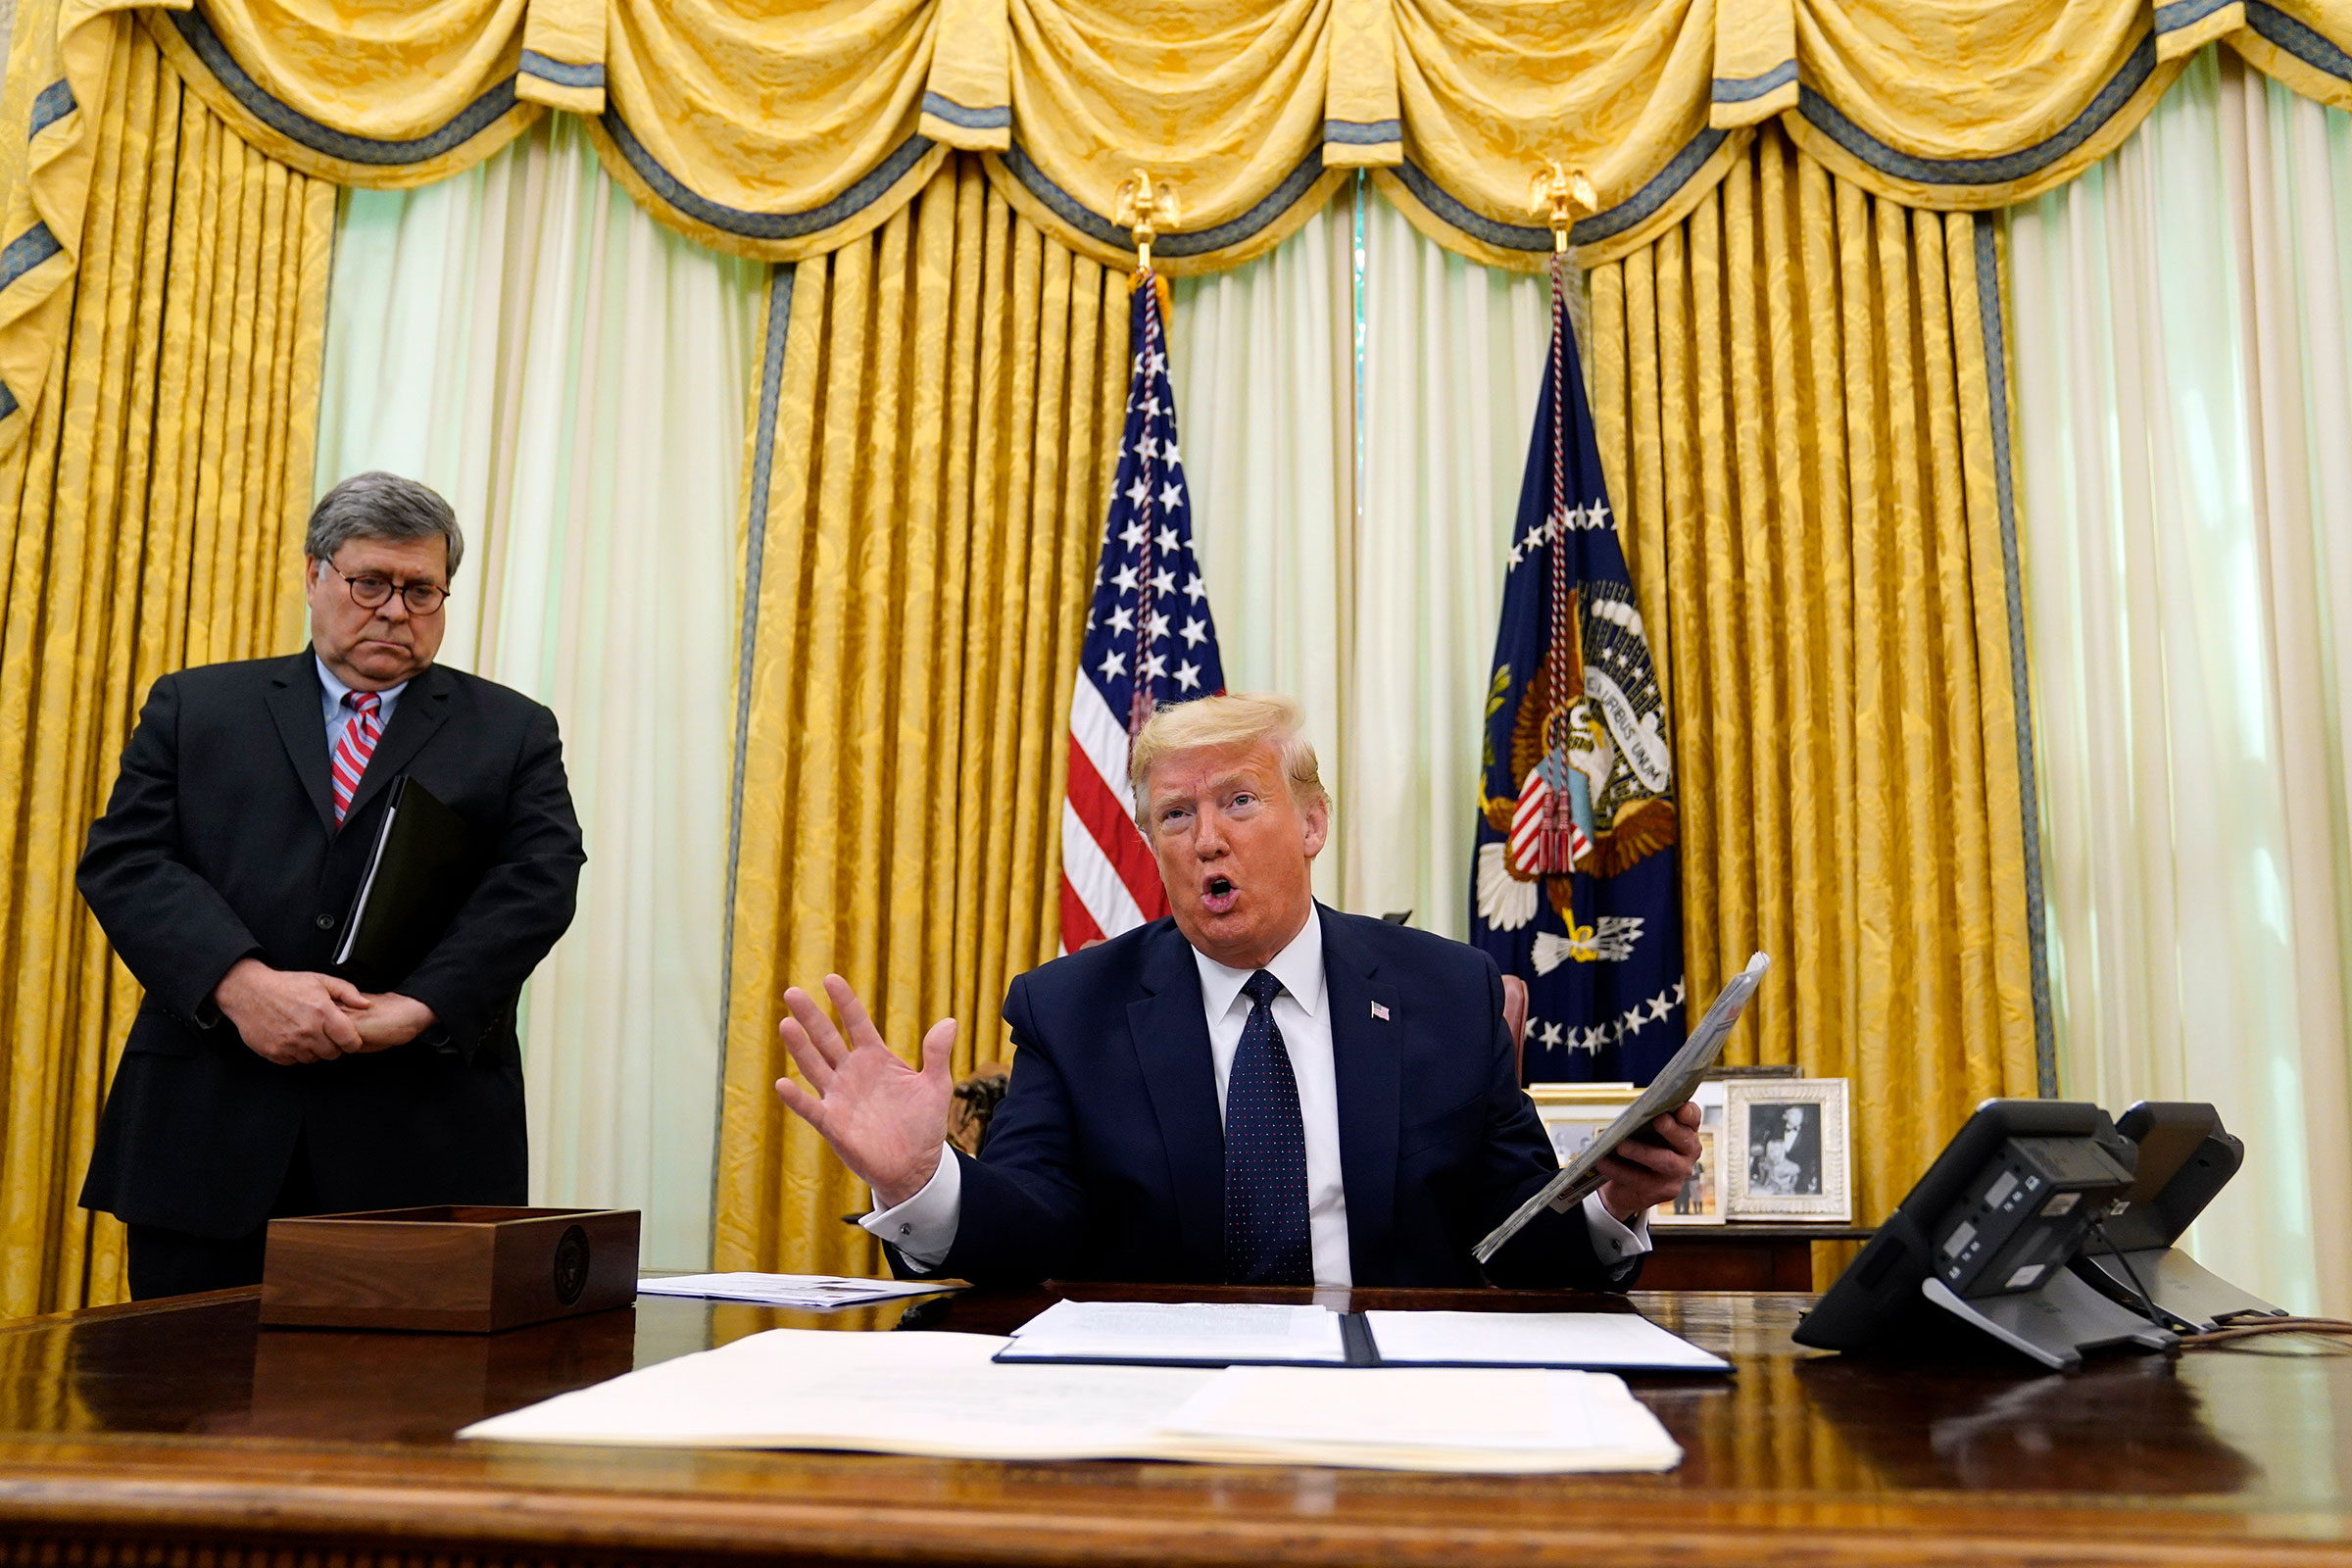 President Donald Trump speaks before signing an executive order aimed at curbing protections for social media giants, in the Oval Office of the White House, on May 28, 2020.